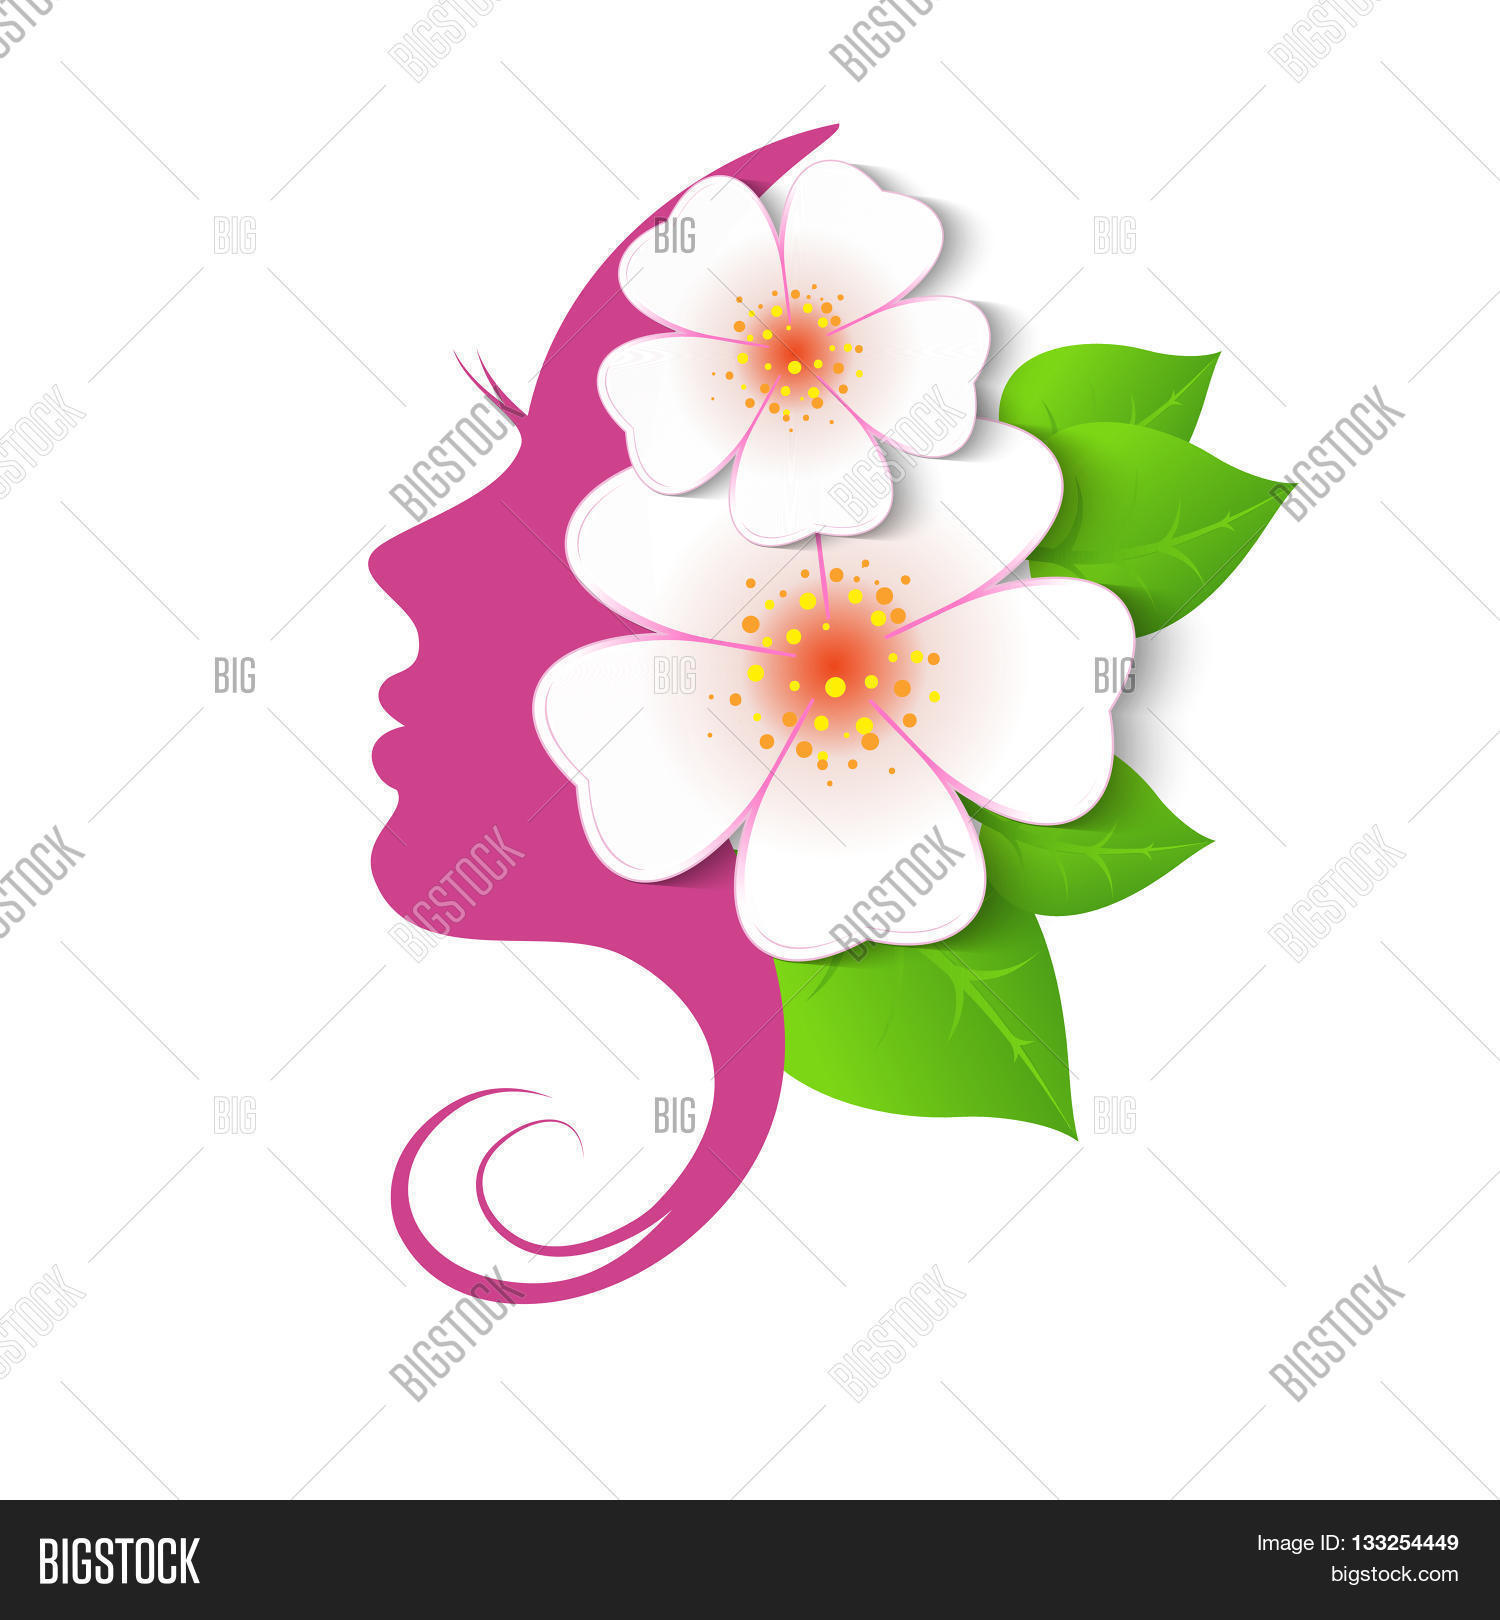 Female face circle vector photo free trial bigstock woman with flowers in hair vector beauty floral logo izmirmasajfo